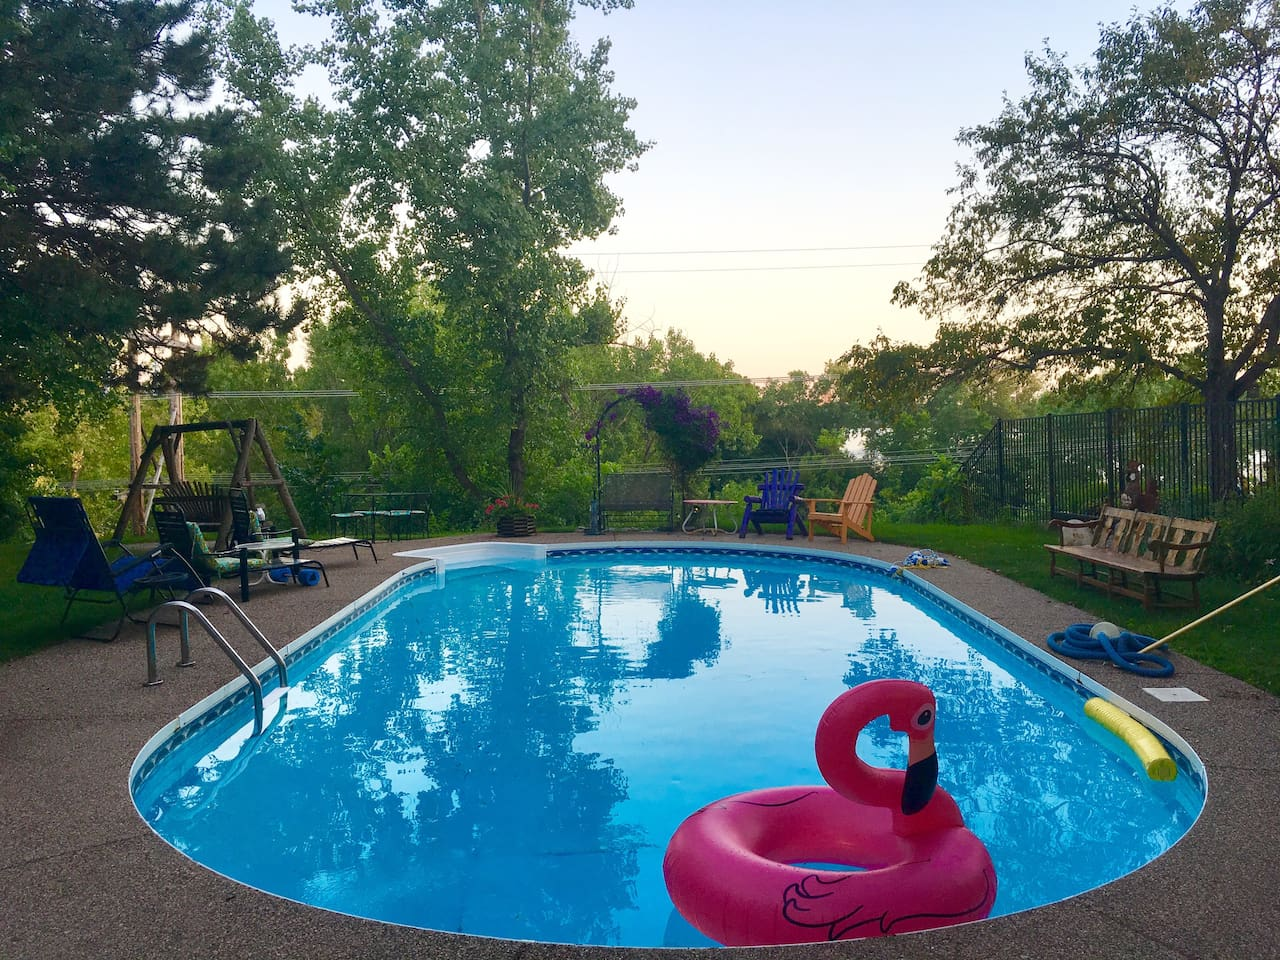 Pool closed for the winter season. In non-summer months, enjoy our large backyard (complete with bonfire pit & view of Cedar lake!)